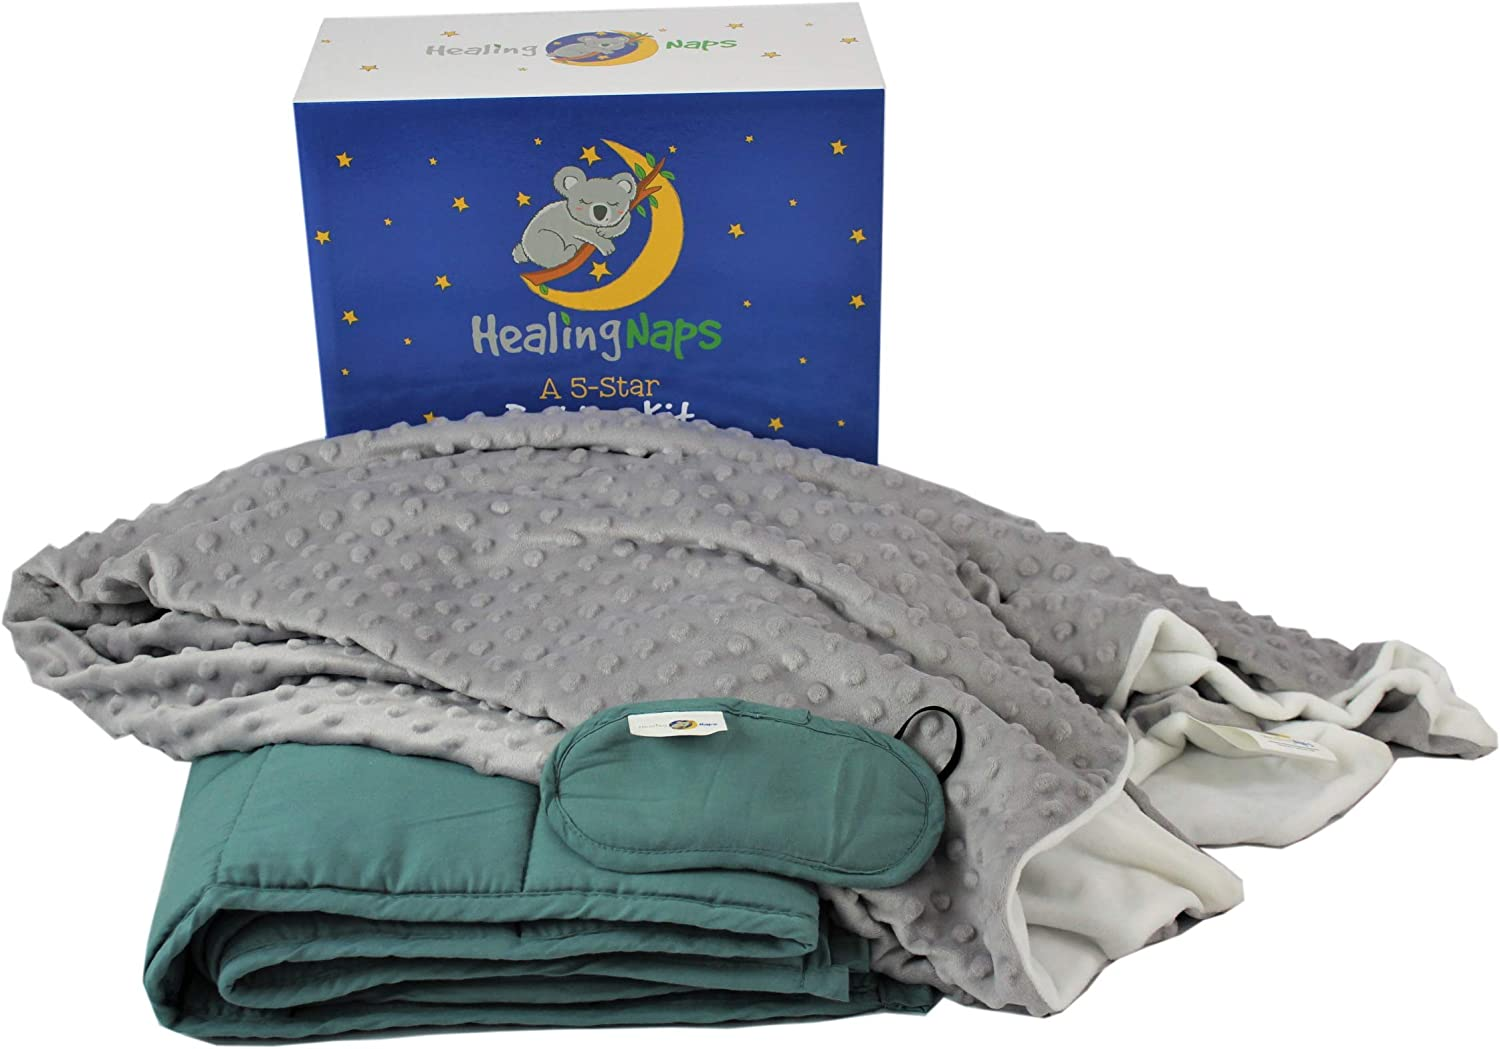 5 lb Premium Bamboo Weighted Blanket Bedding Kit for Kids | 3-Piece Set | 36 X 48 Hypoallergenic Cooling Bamboo Heavy Blanket| Soft Minky Dot Duvet Cover | Light Blocking Sleep Eye Mask